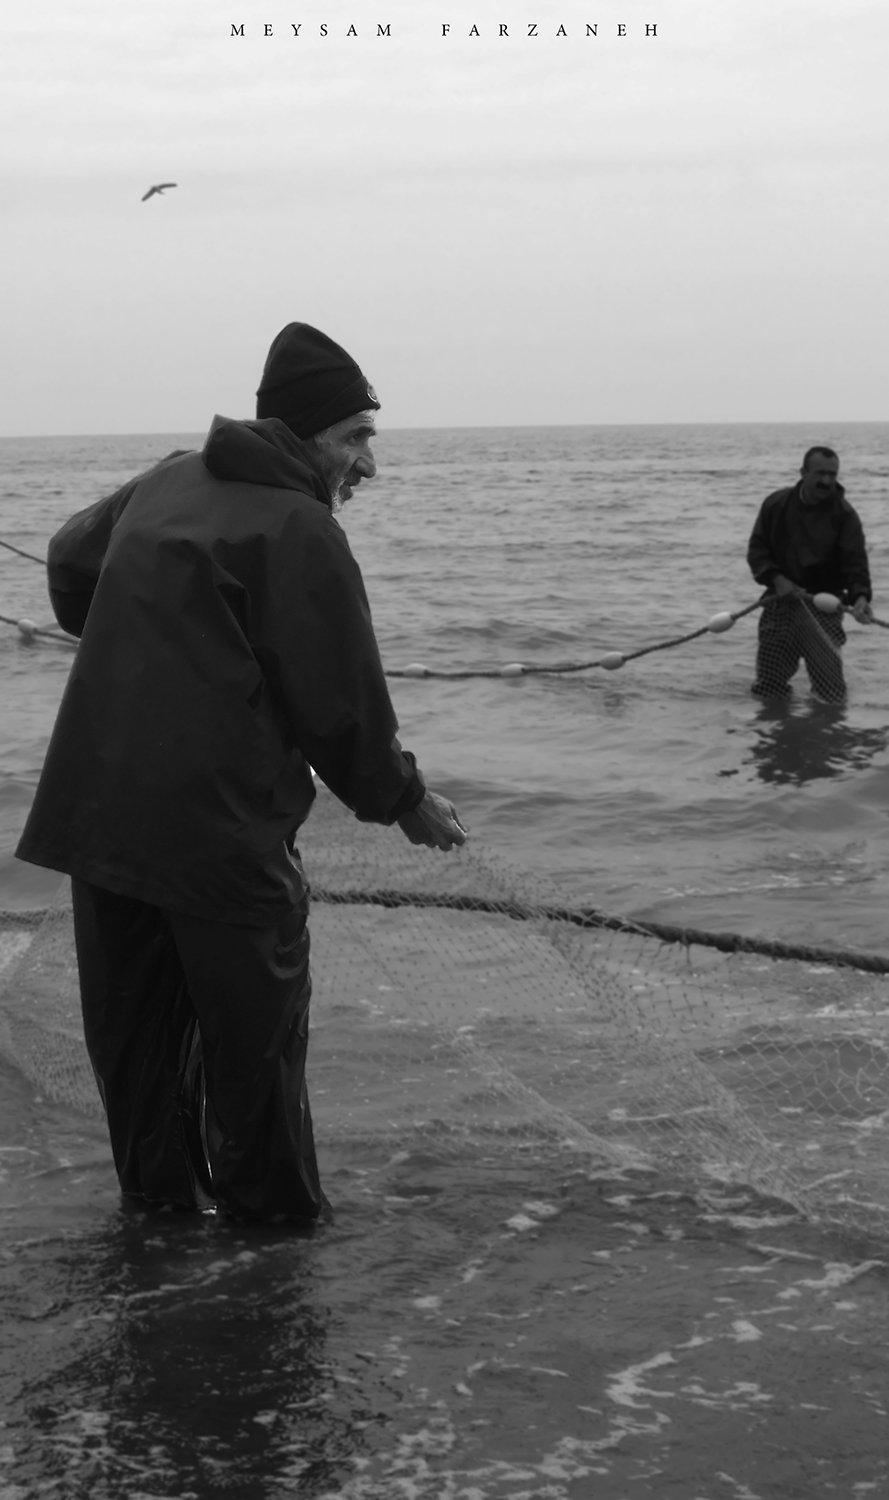 fishinf in the caspian sea